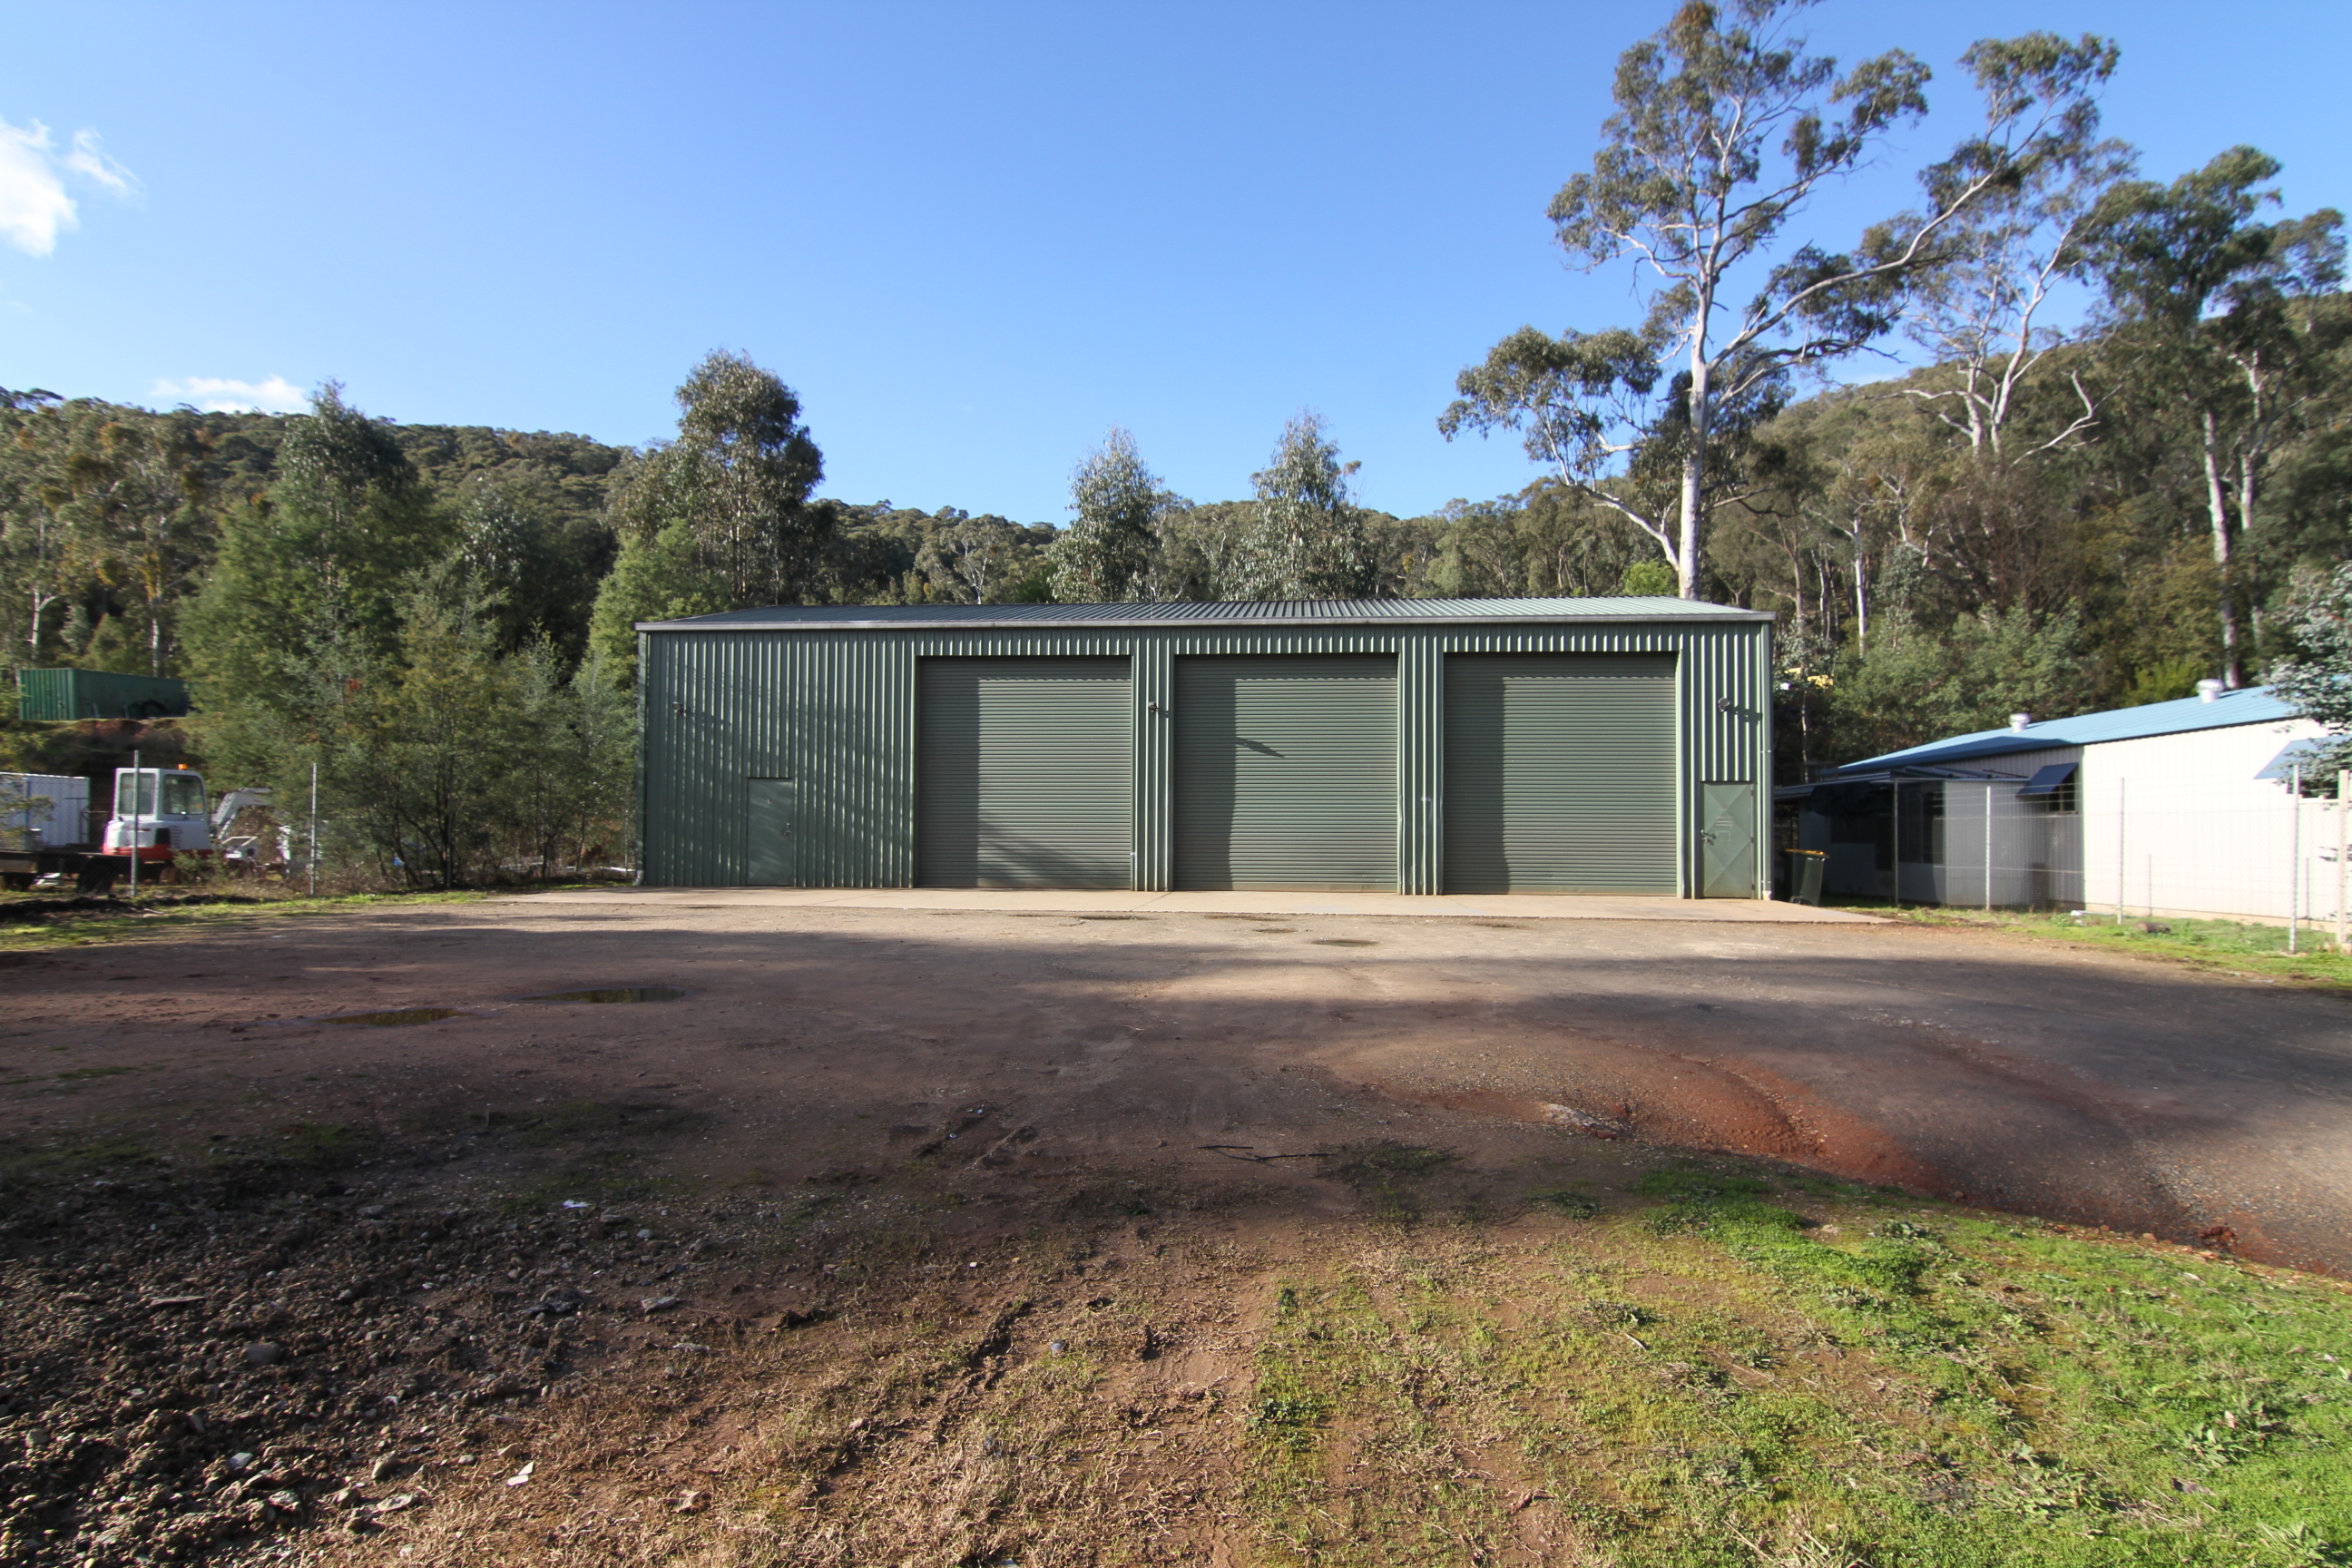 Light Industrial Shed with Tenant in Place